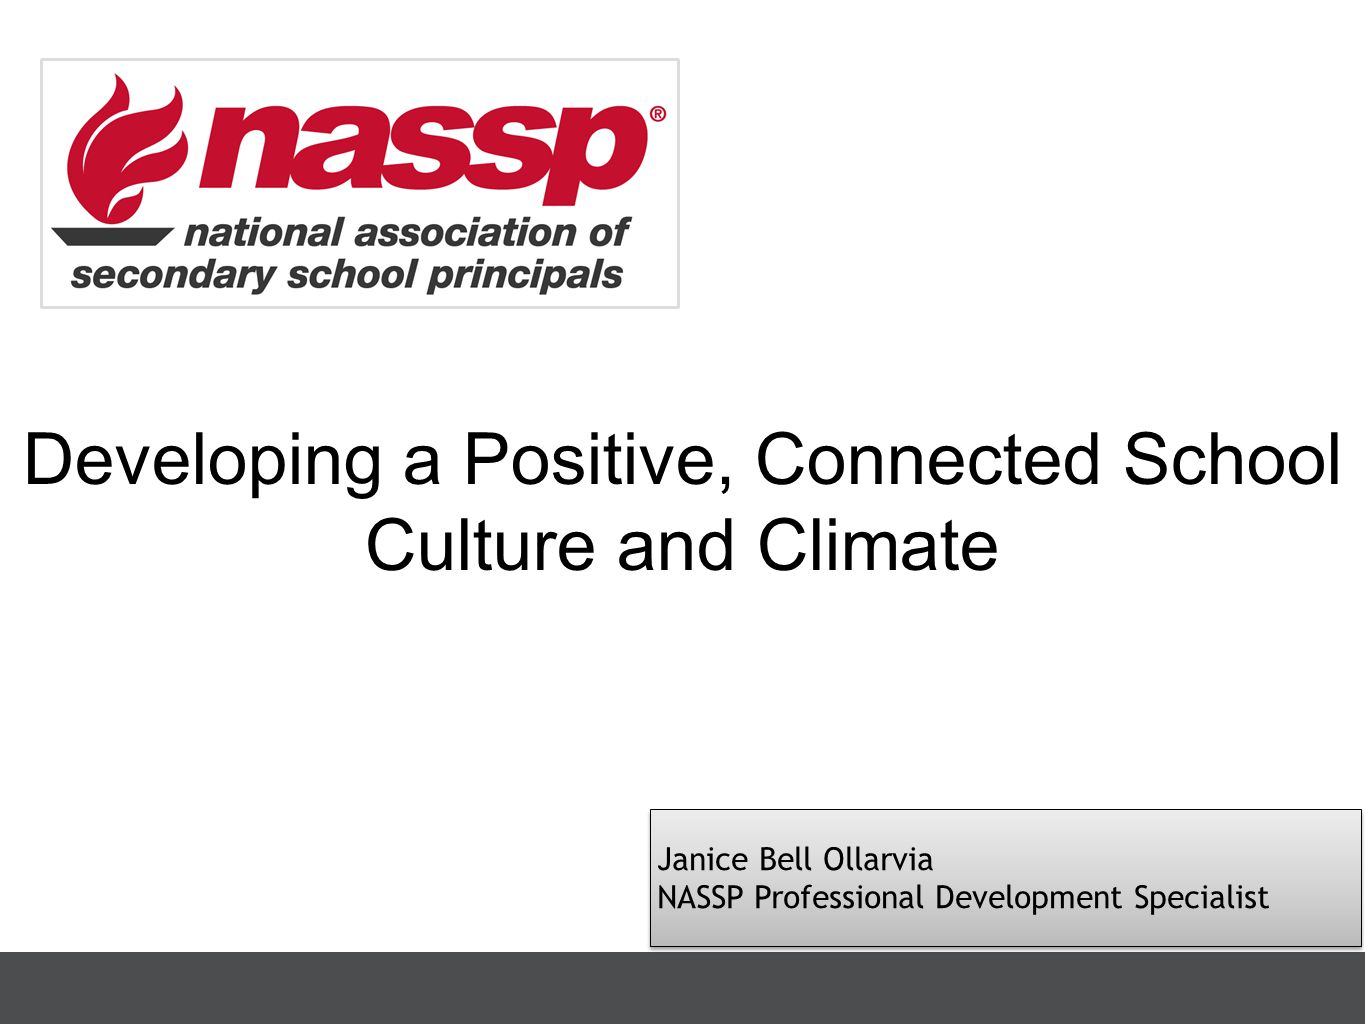 Janice Bell Ollarvia NASSP Professional Development Specialist Janice Bell Ollarvia NASSP Professional Development Specialist Developing a Positive, Connected School Culture and Climate